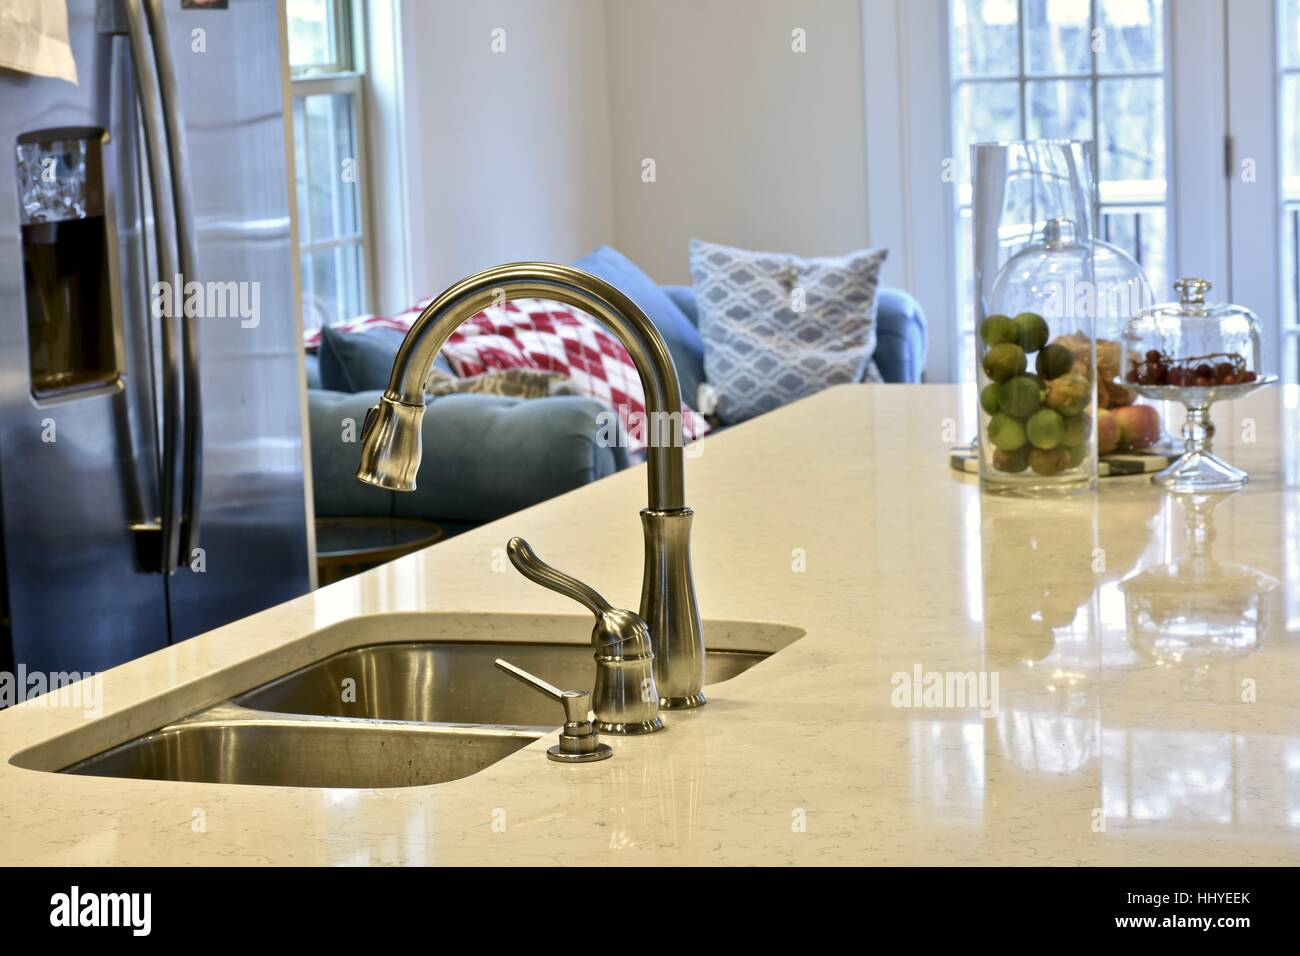 A Modern Kitchen With A Beautiful Carrera Marble Island And A Double Stock Photo Alamy